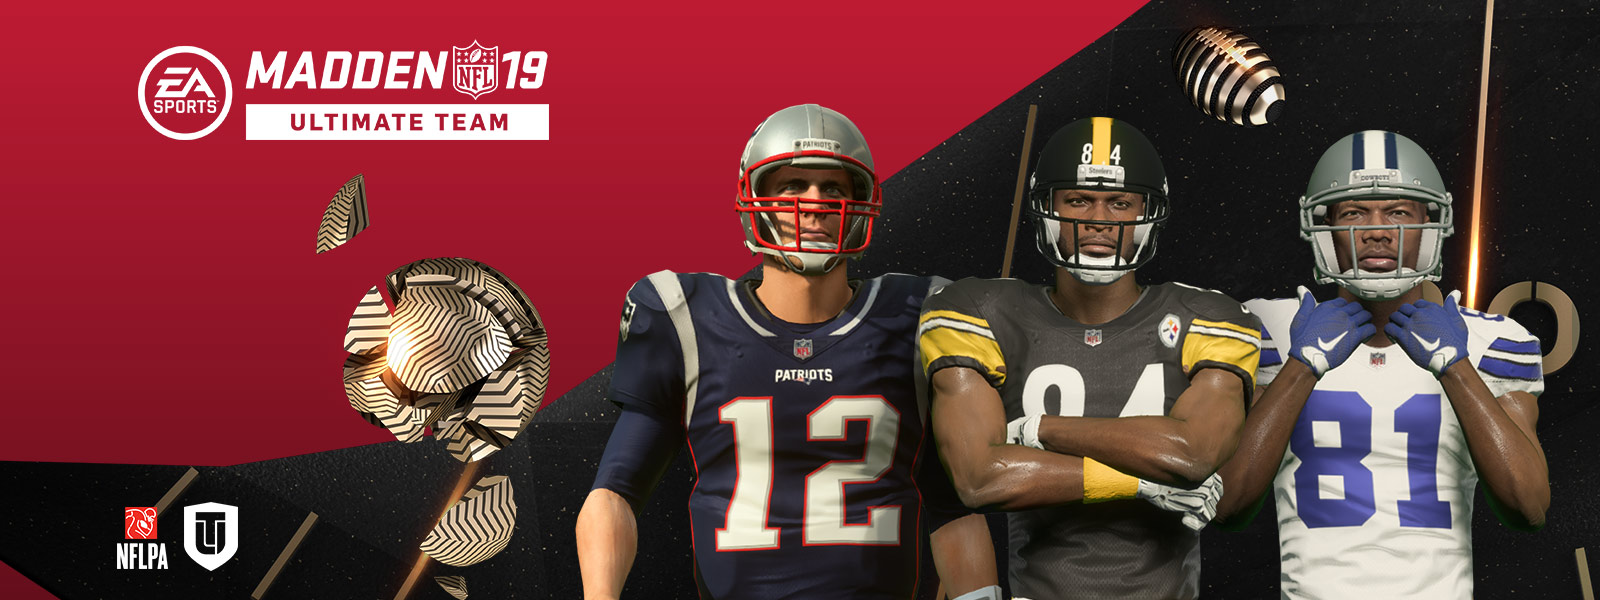 Madden NFL 19 Ultimate Team, Frontalansicht von Tom Brady, Antonio Brown und Terrell Owens